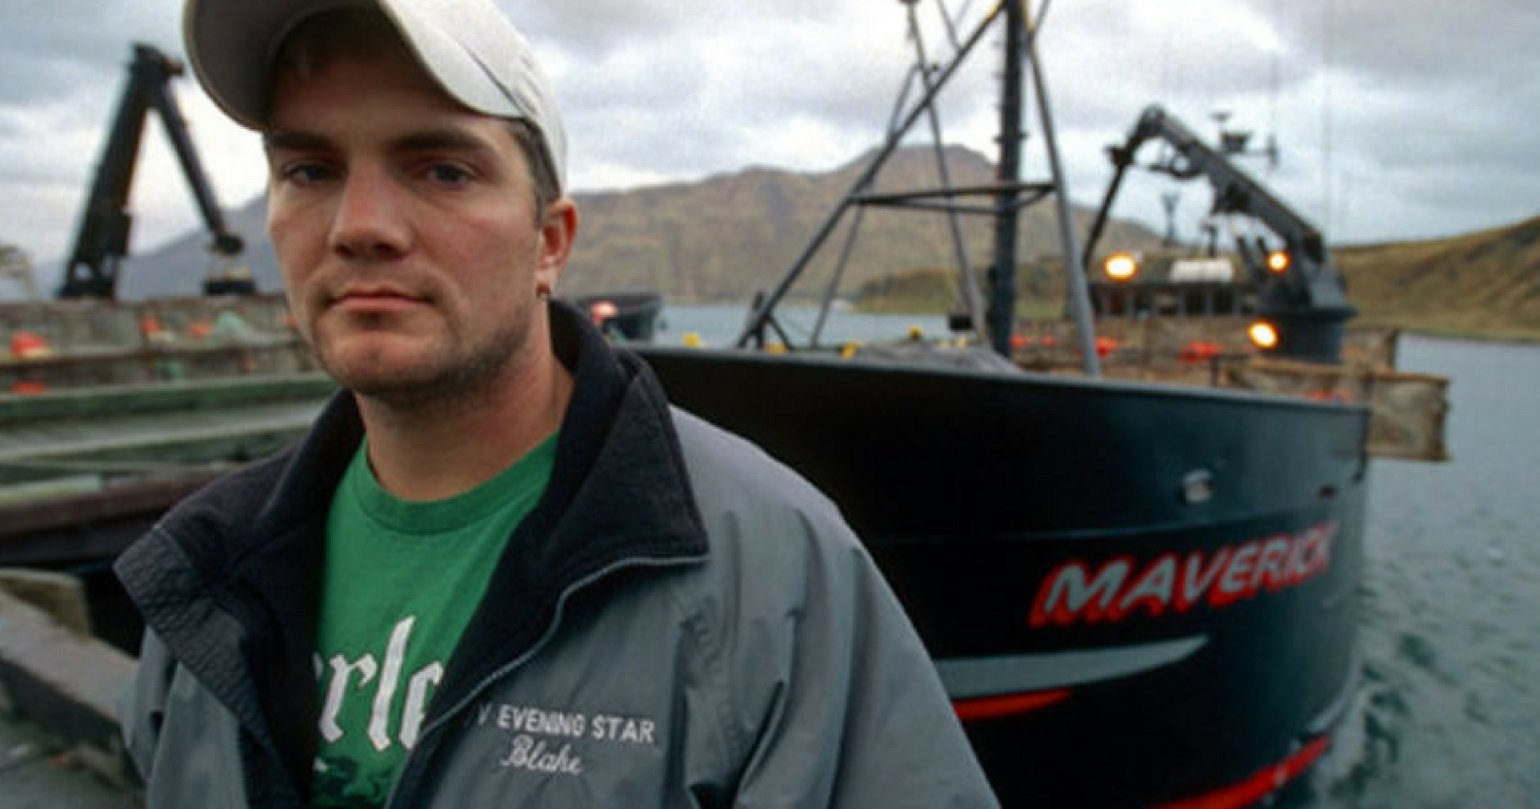 'Deadliest Catch' star Blake Painter found dead at 38